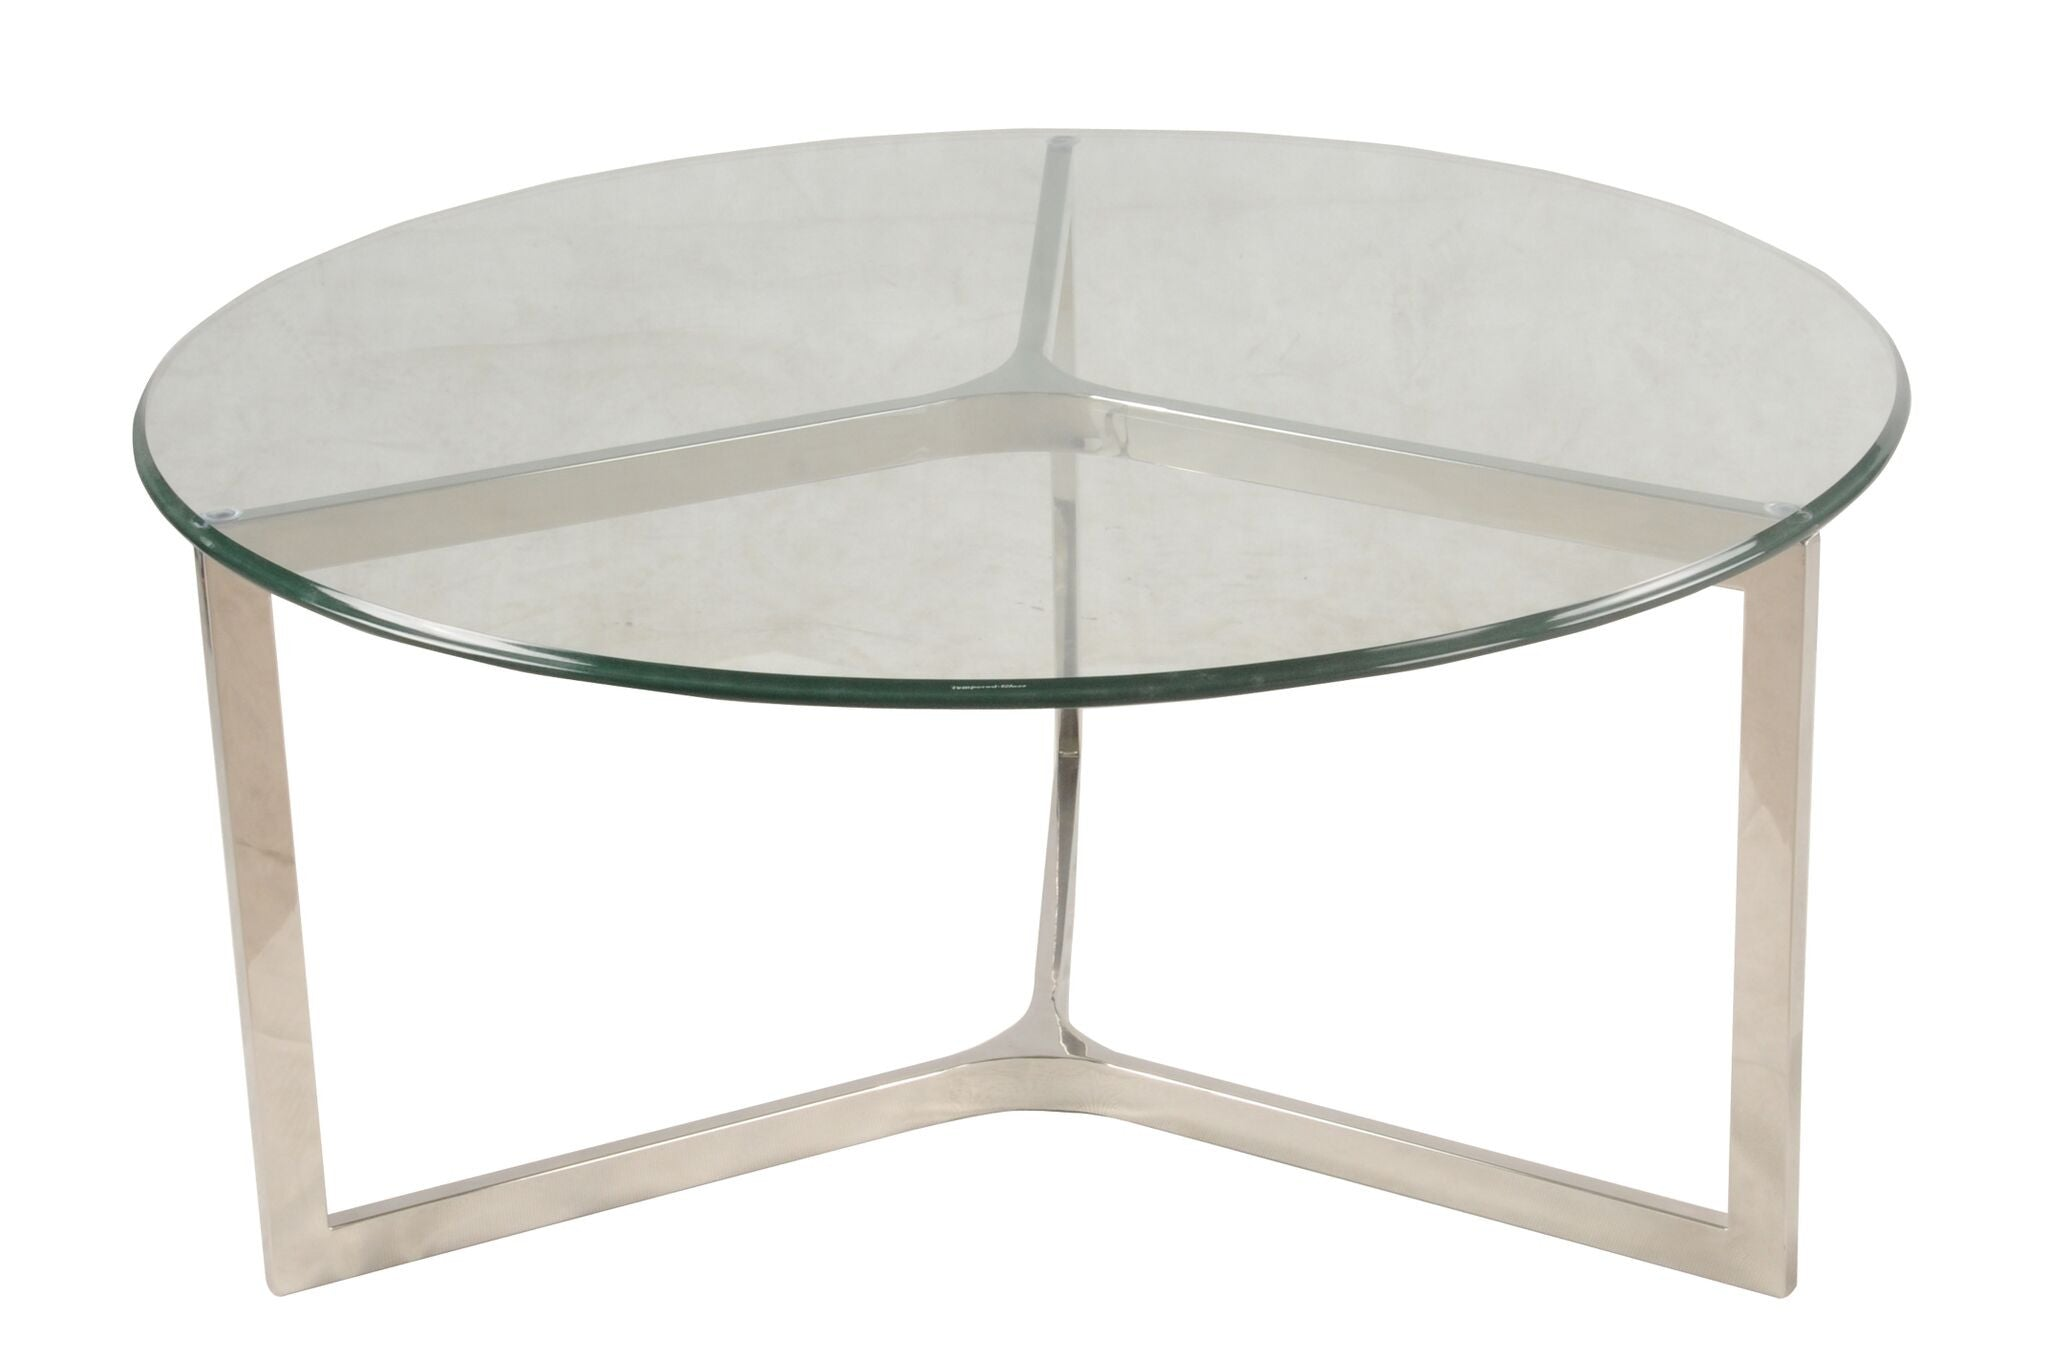 San clemente coffee table sterling silver apt2b san clemente coffee table sterling silver apt2b 1 geotapseo Image collections